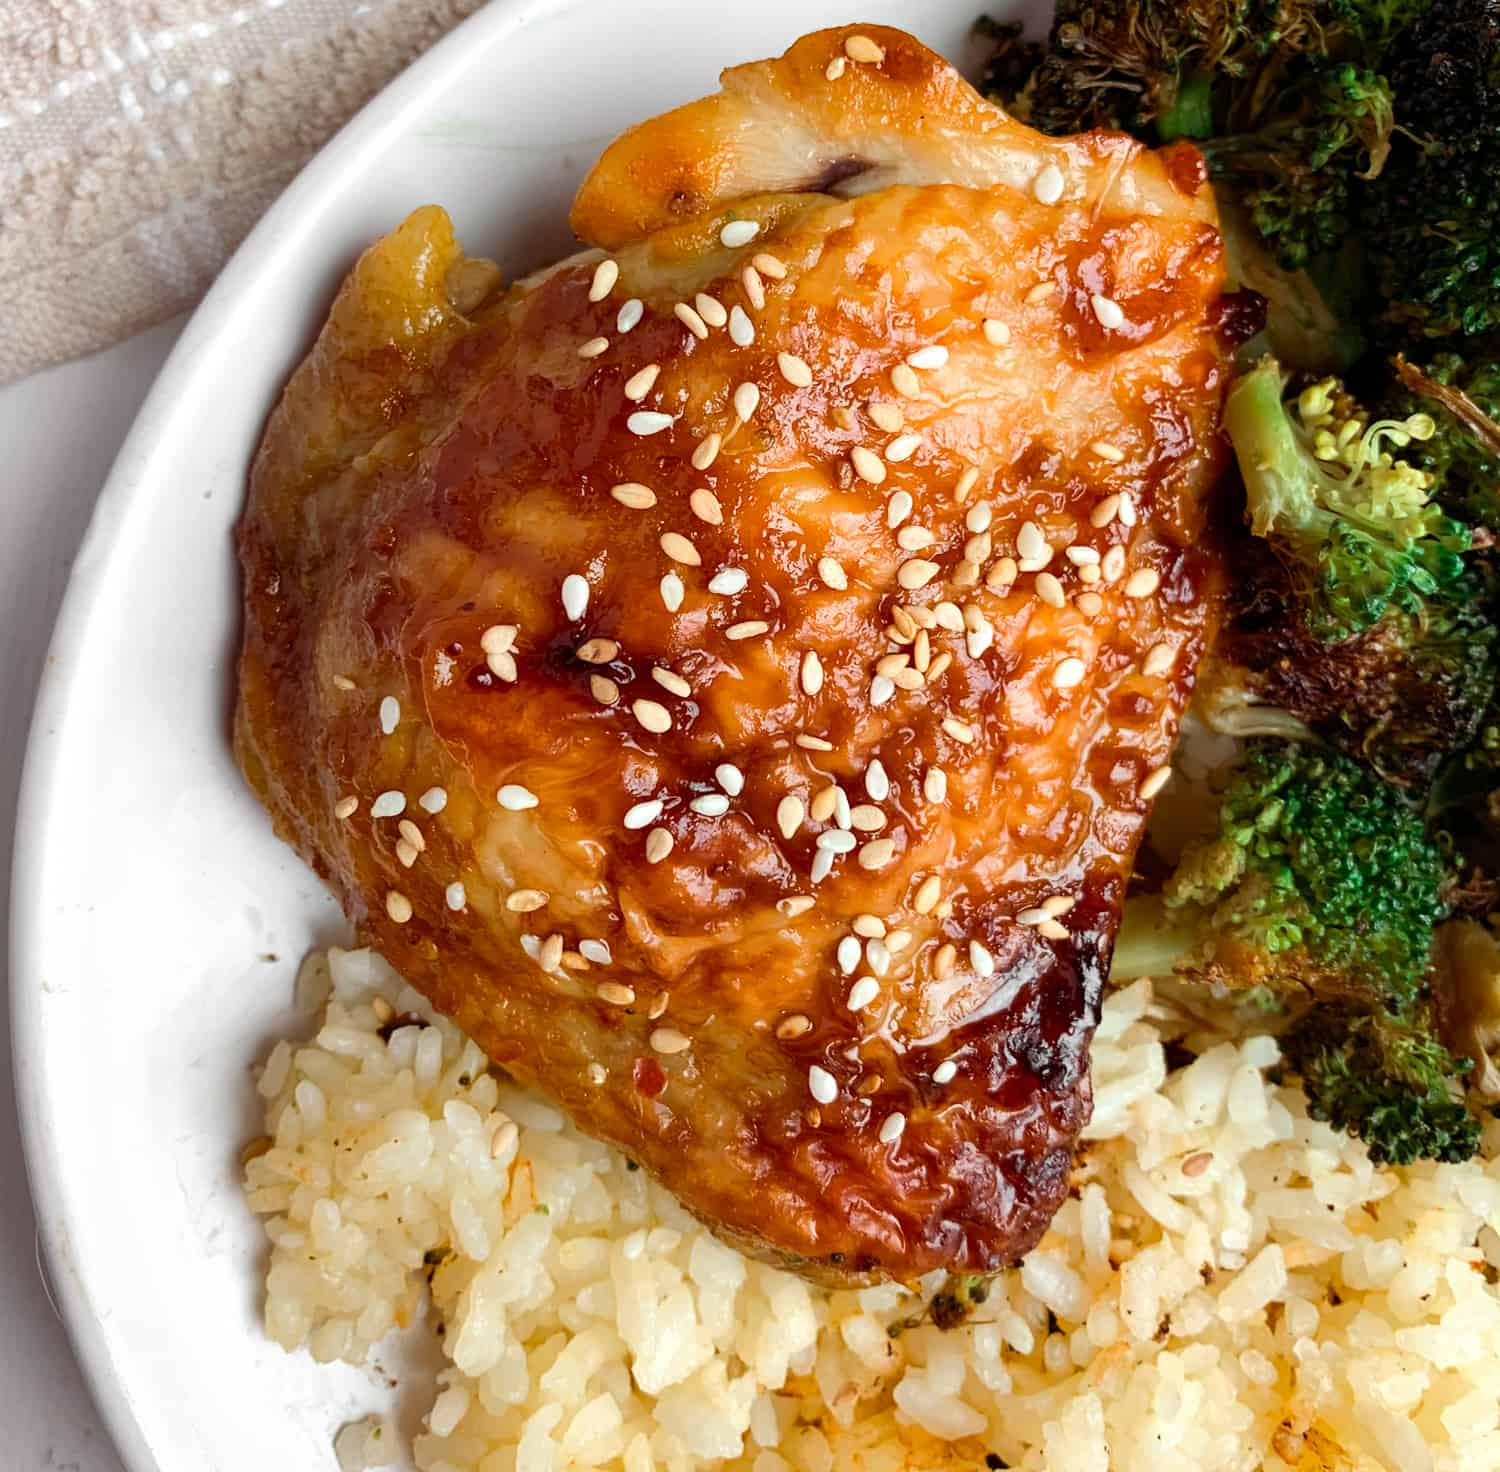 teriyaki chicken thigh broccoli and rice